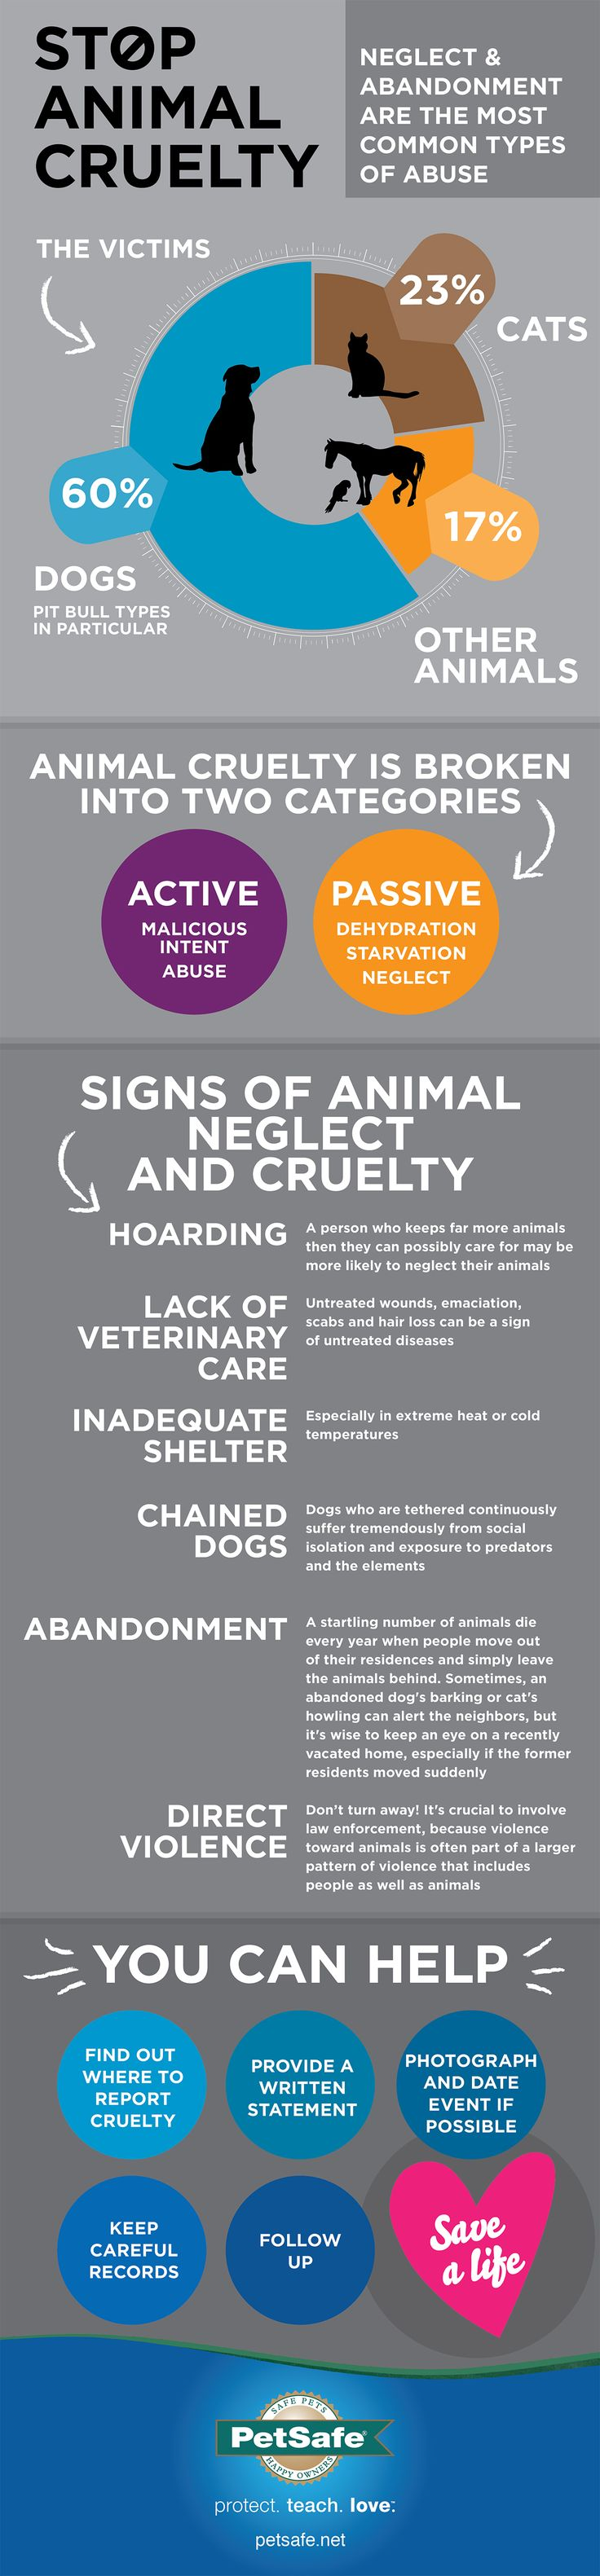 Help Prevent Animal Cruelty and pease live vegan because food animals suffer extreme abuse, live transport, violent slaughter and barren deprived lives. [ humaneproject.com ]